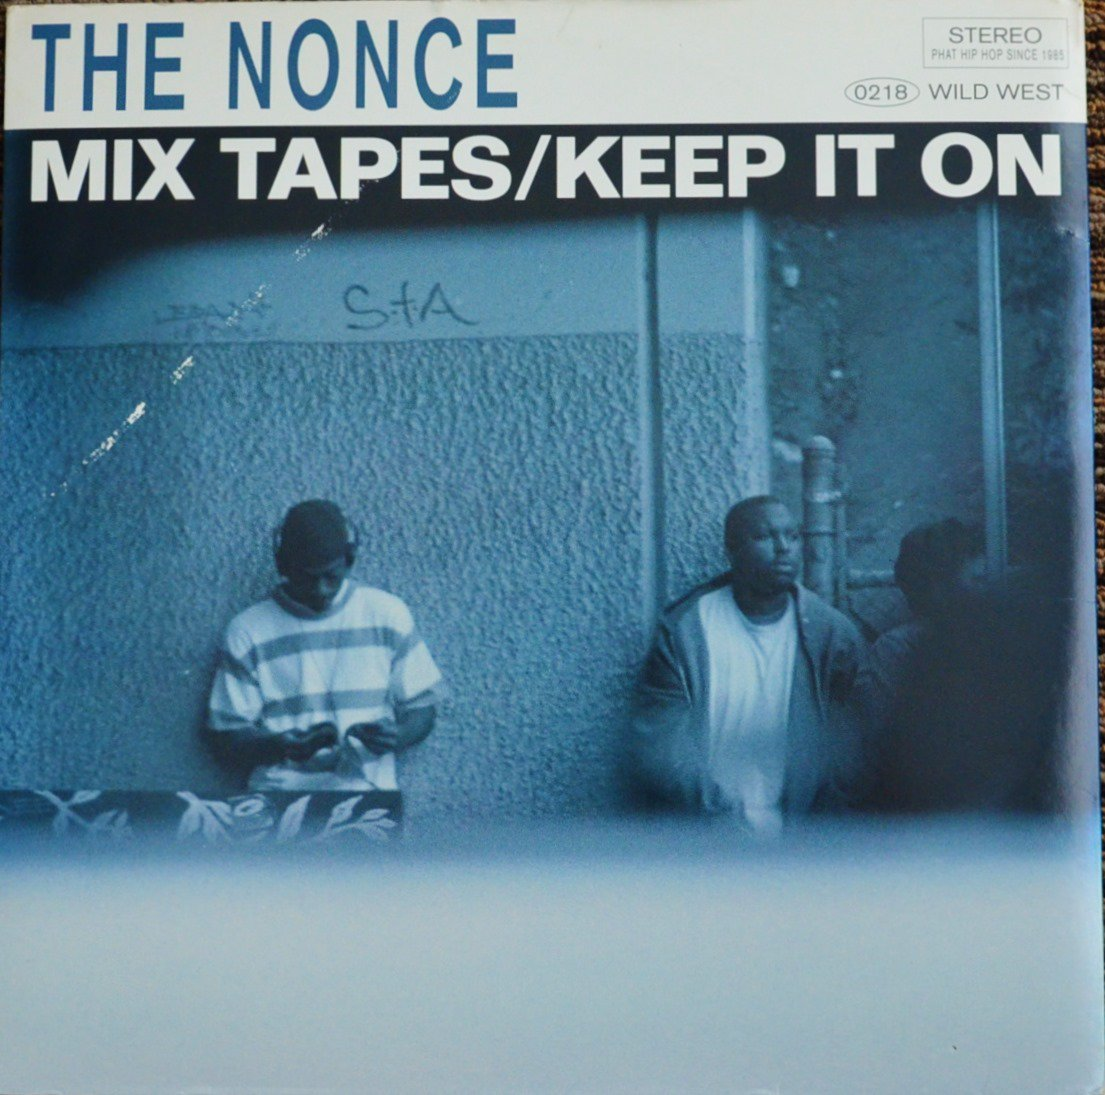 THE NONCE ‎/ MIX TAPES / KEEP IT ON / EIGHTY FIVE (12